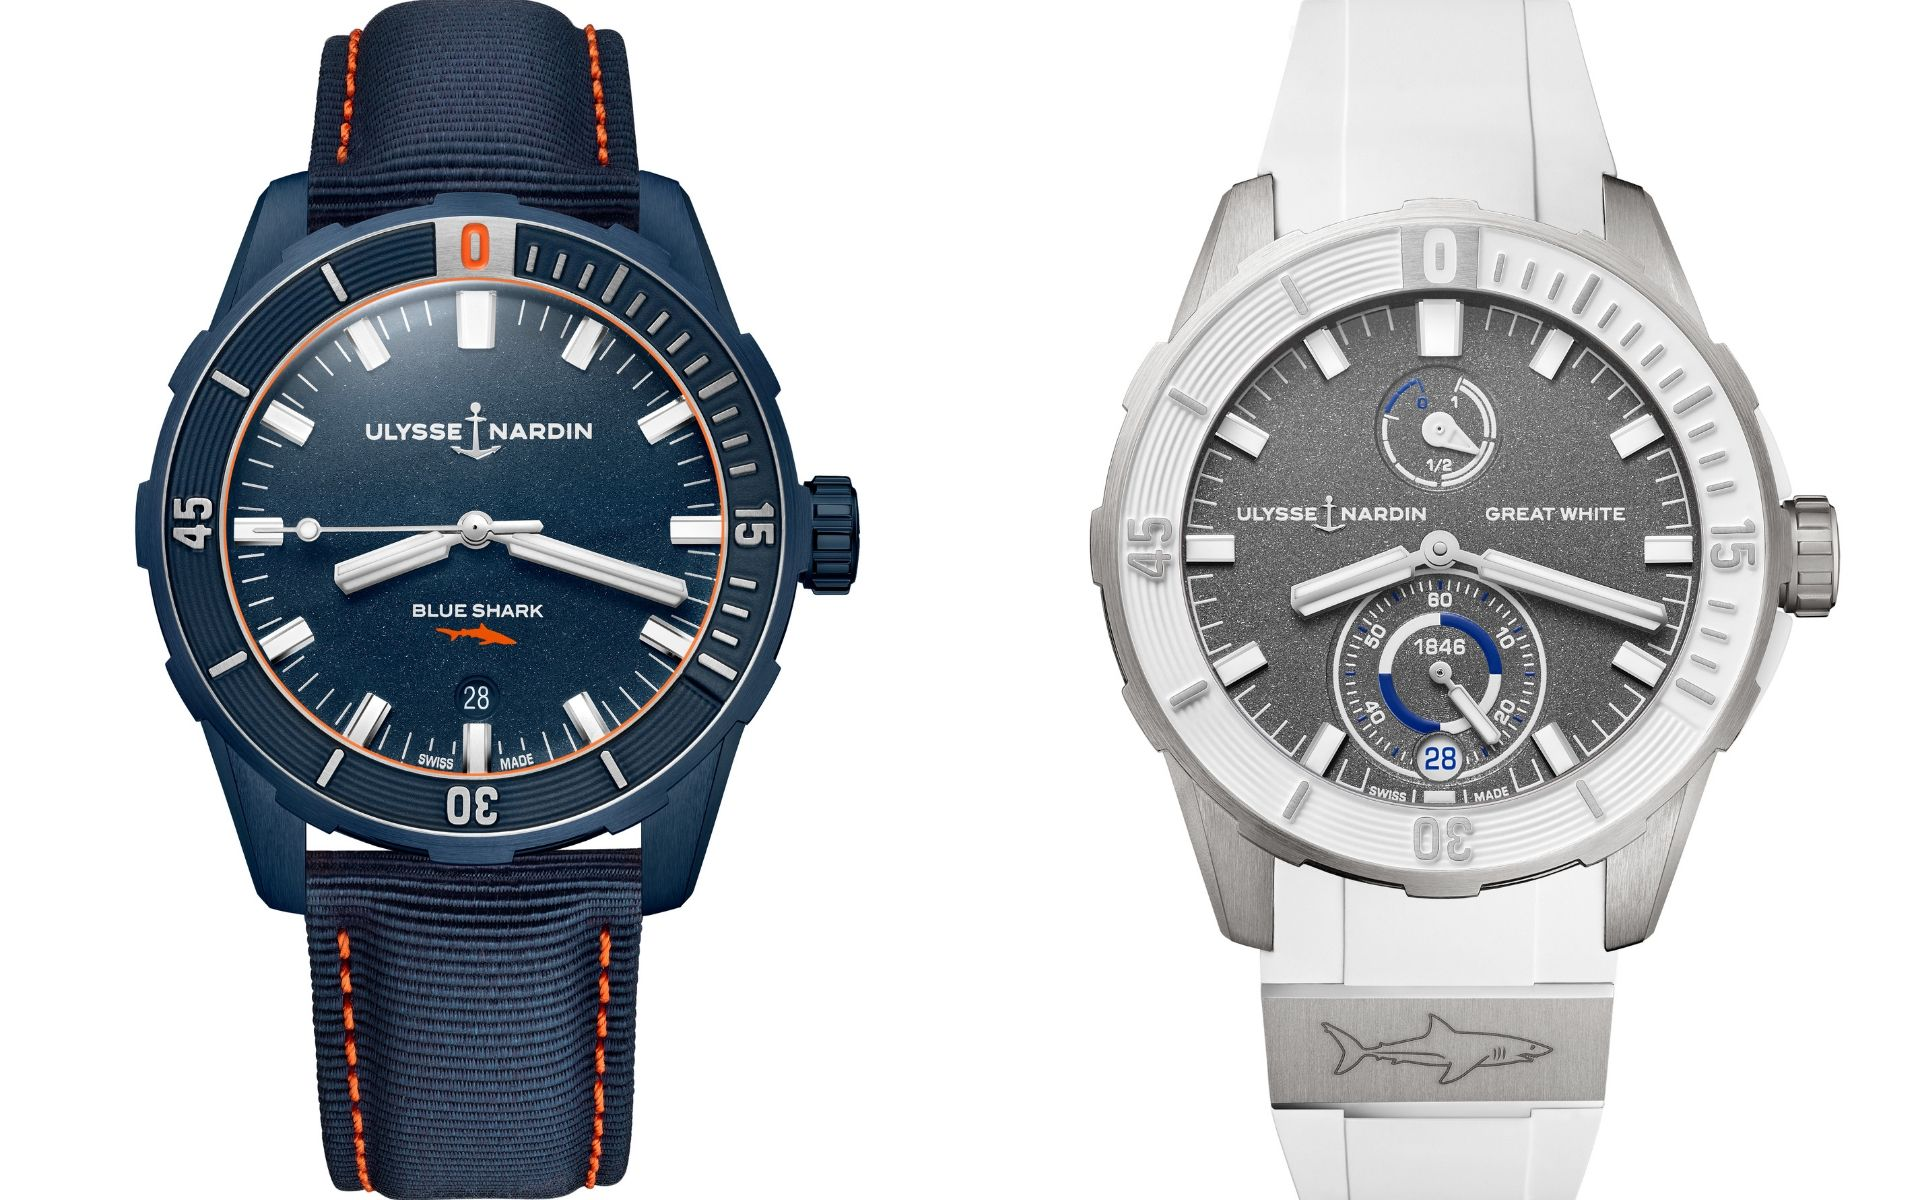 An In-Depth Look At The New Dive Watches From Ulysse Nardin